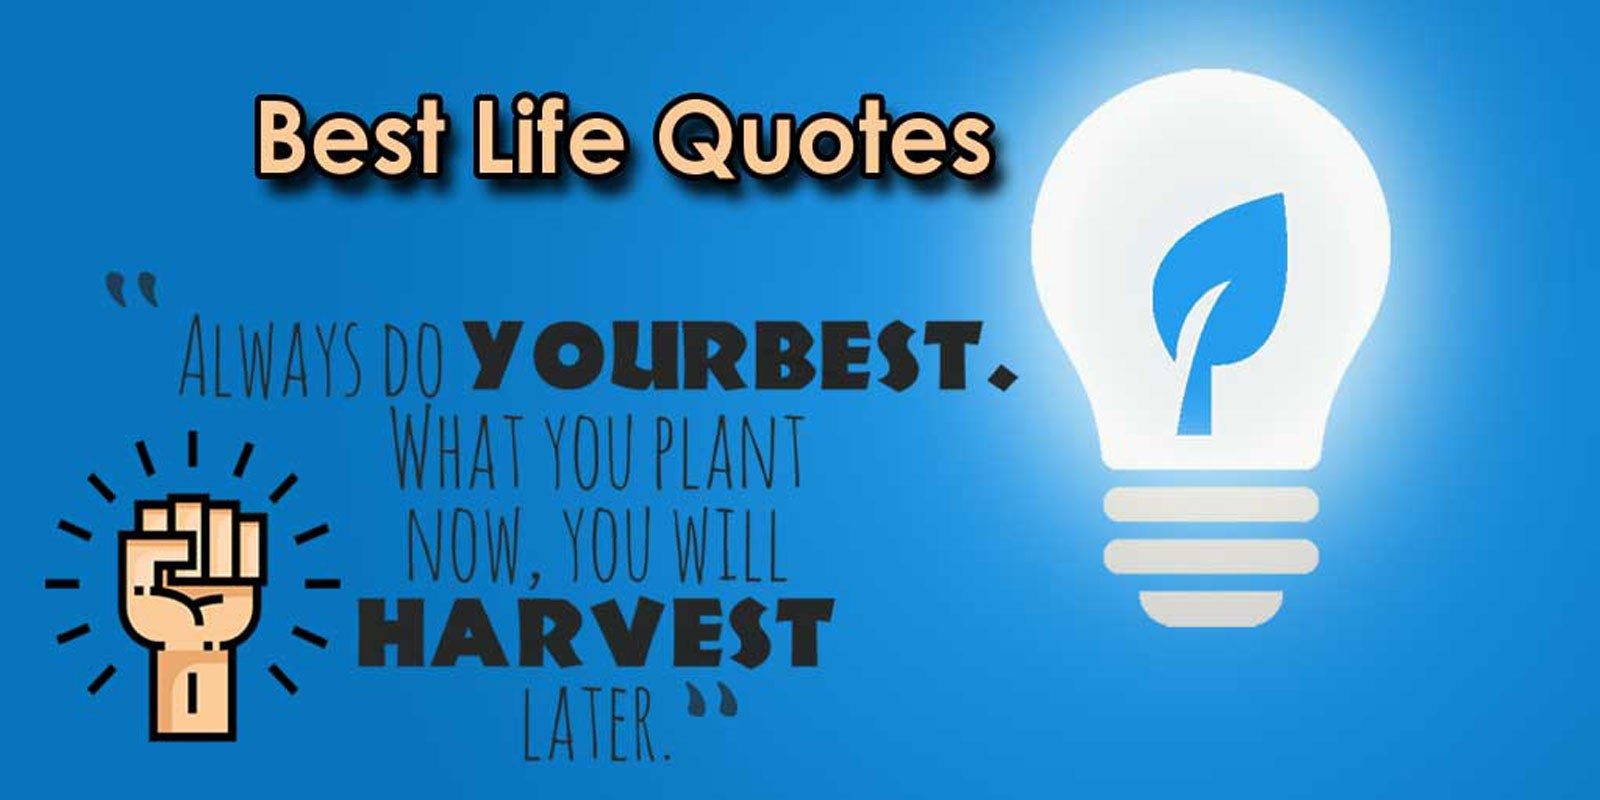 Best Life Quotes - Android App Source Code